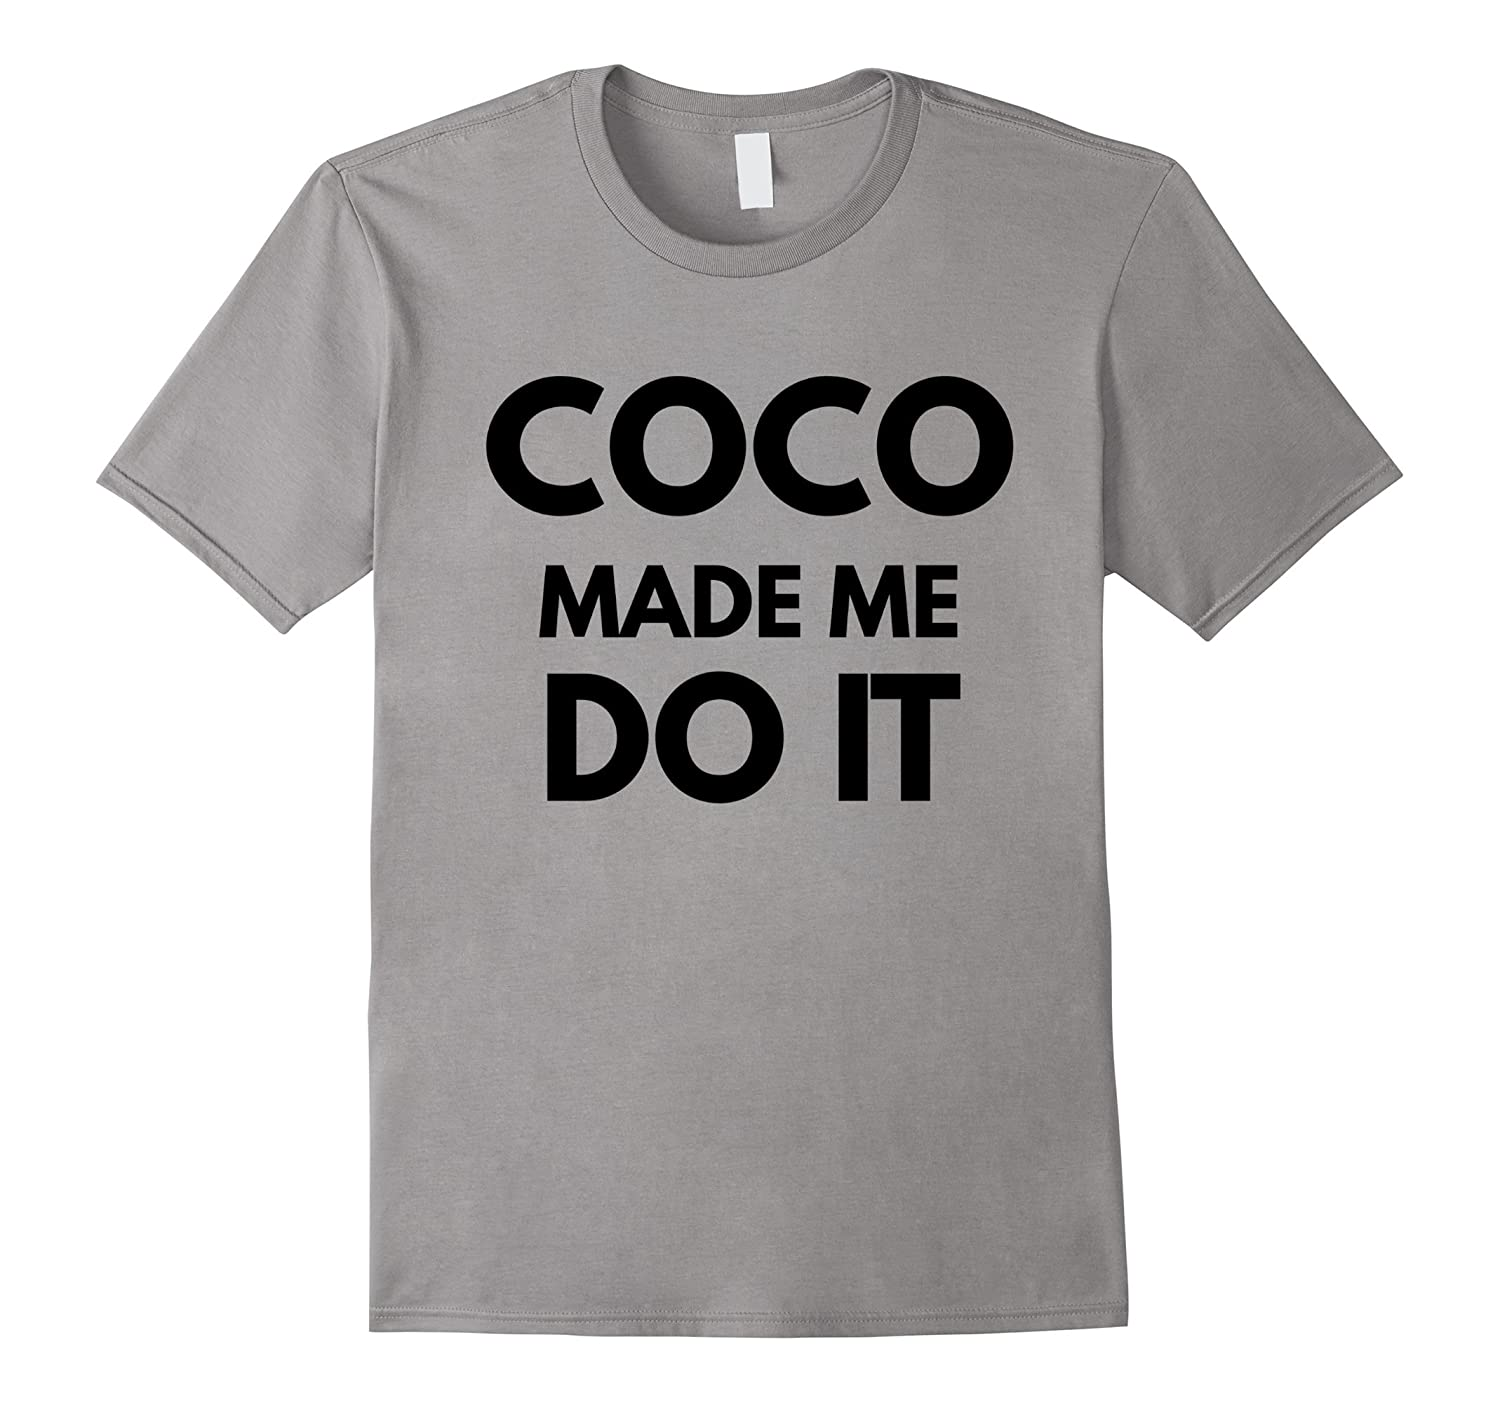 Cool Coco Made Me Do It T-Shirt for Fashion Lovers T Shirt-T-Shirt